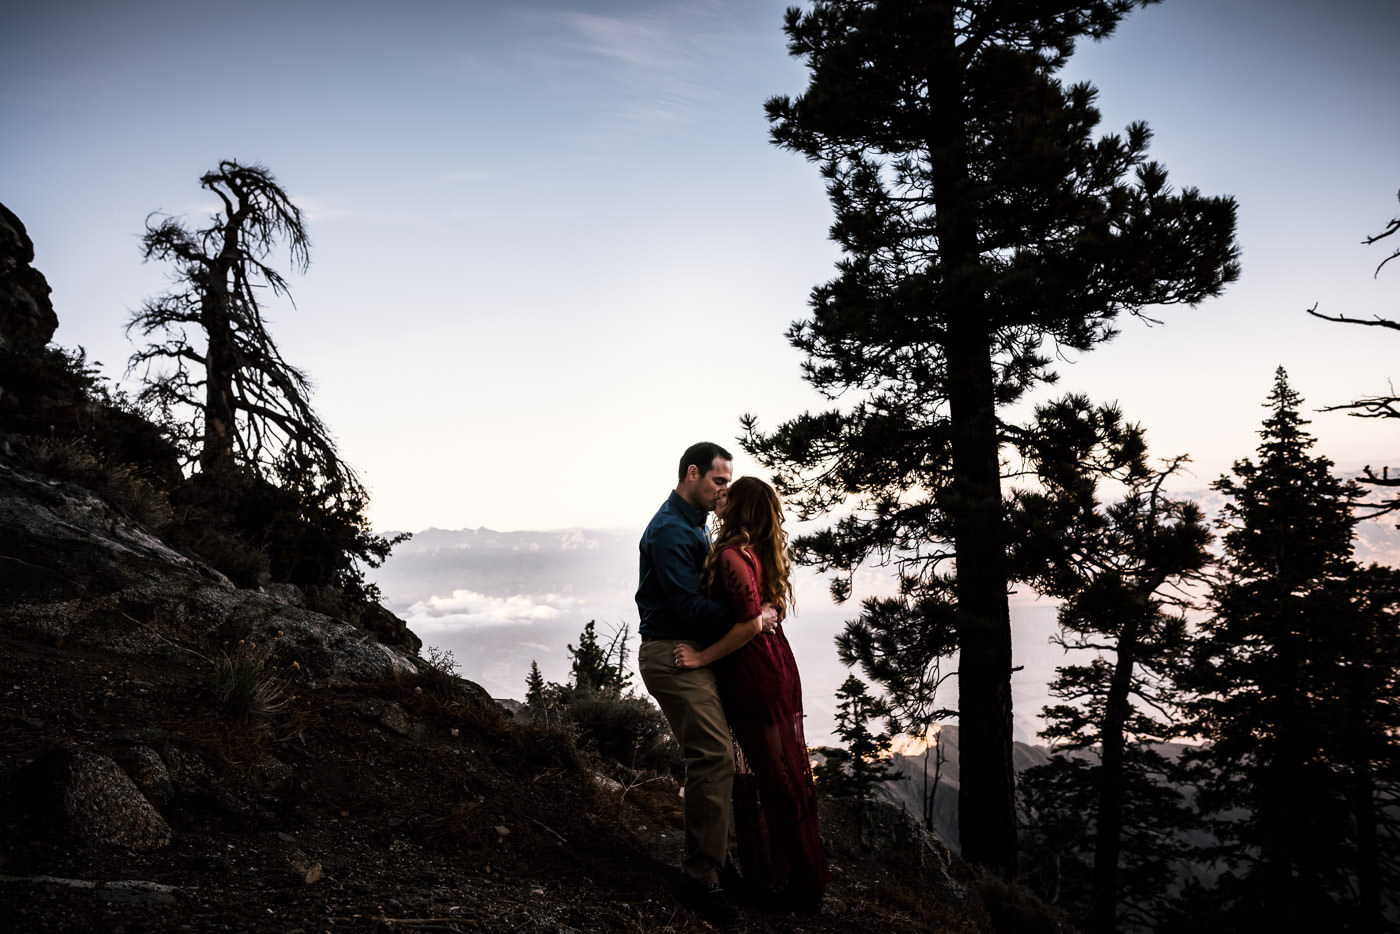 Kissing on the side of a mountain near Palm Springs.